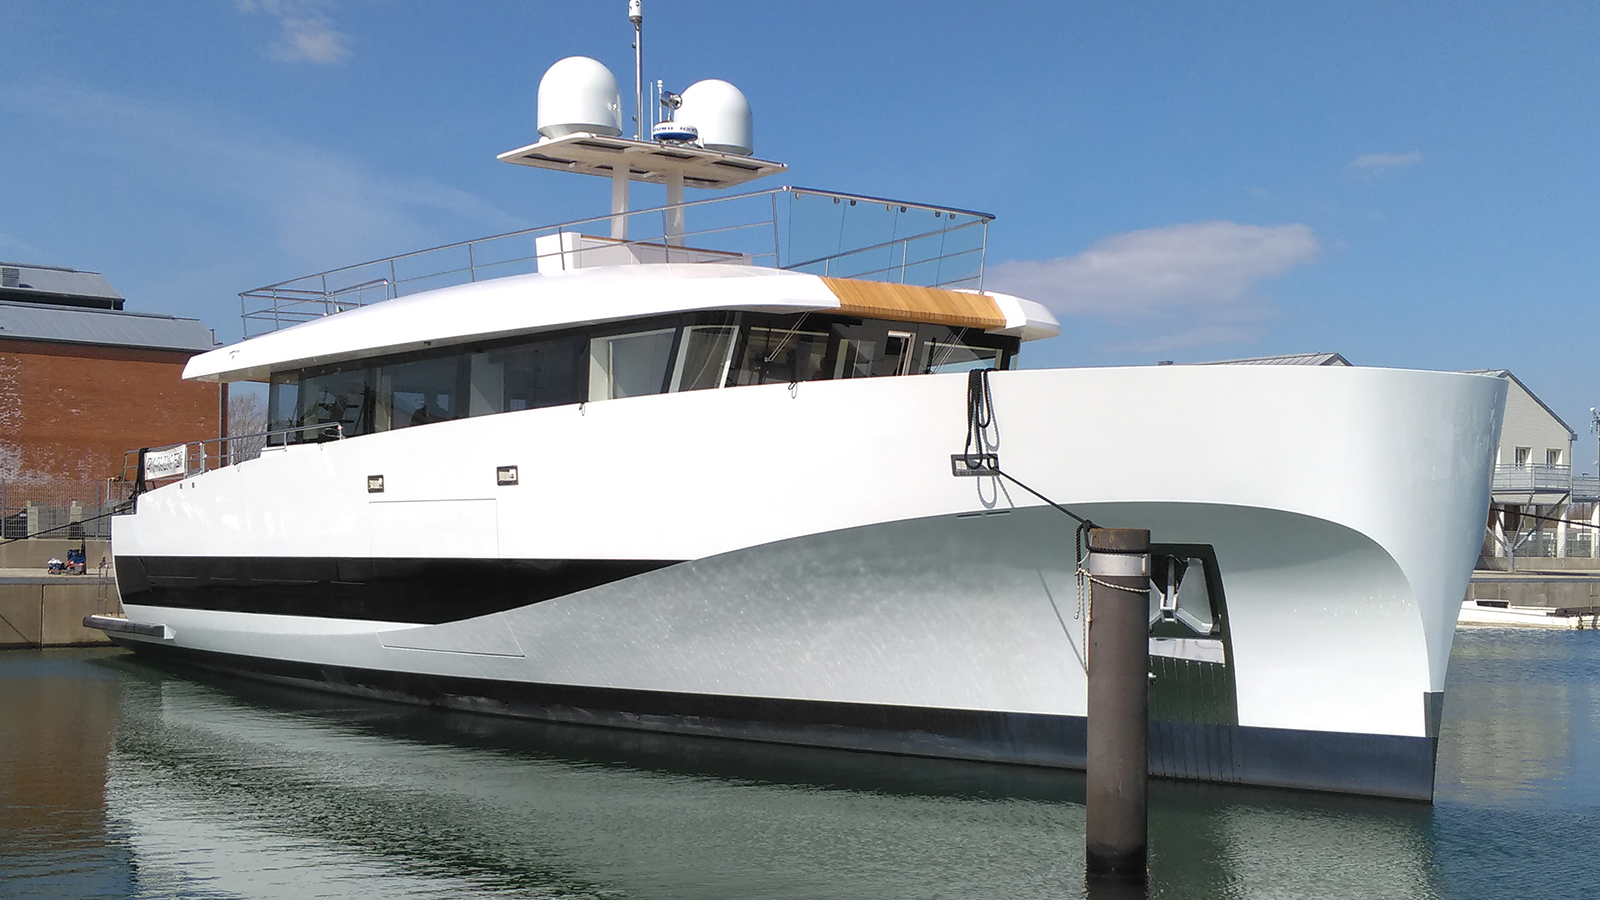 The Launch of the 5th Wallyace 27 Yacht Christened 'Private GG'